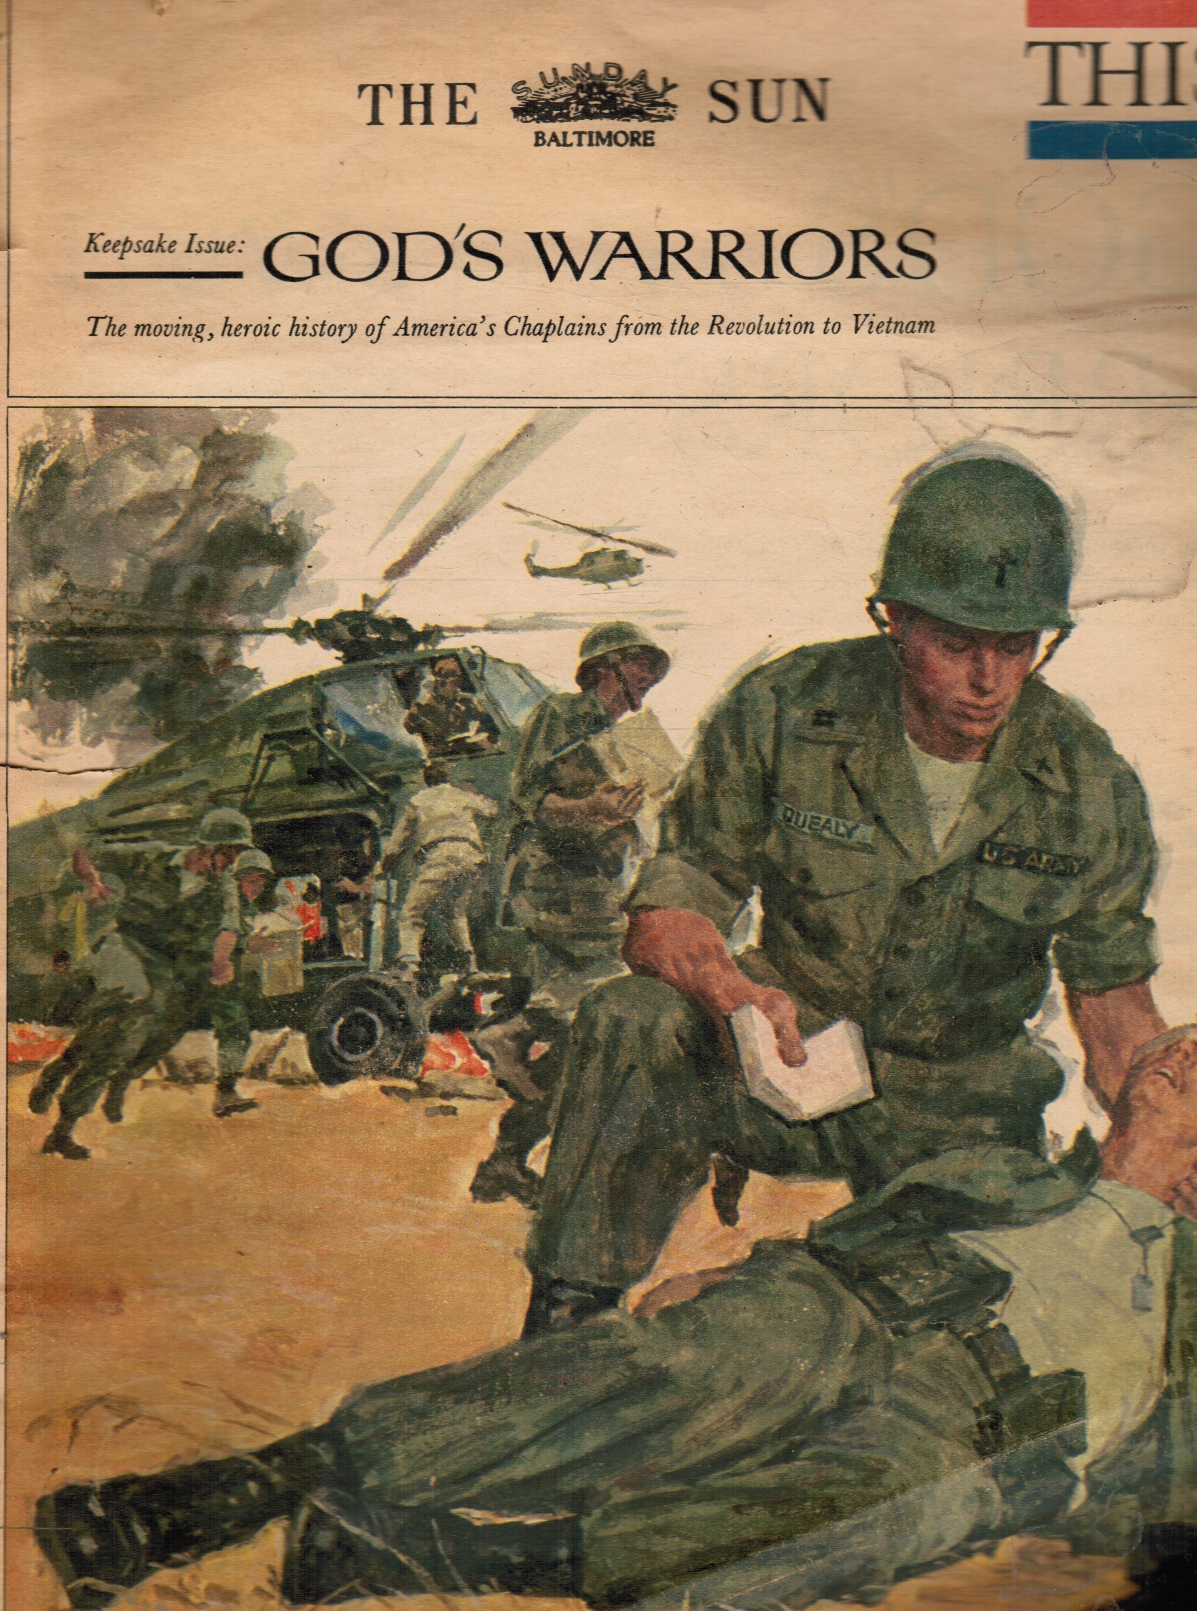 Image for God's Warriors - This Week Magazine, Baltimore Sun March 26, 1967 America's Chaplains